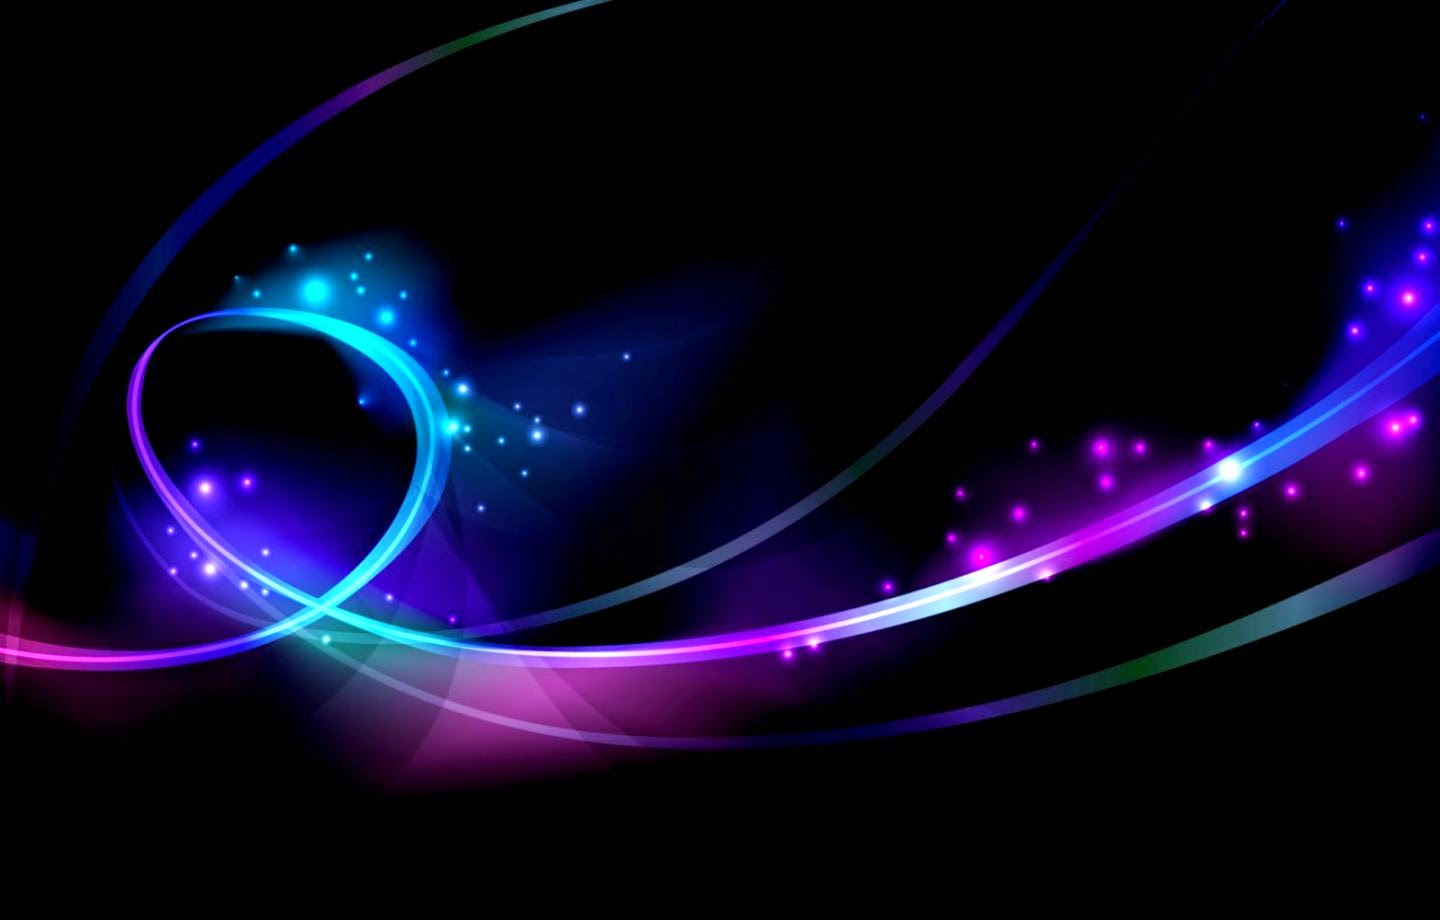 cool wallpapers 1920x1080 abstract hd amazing wallpapers